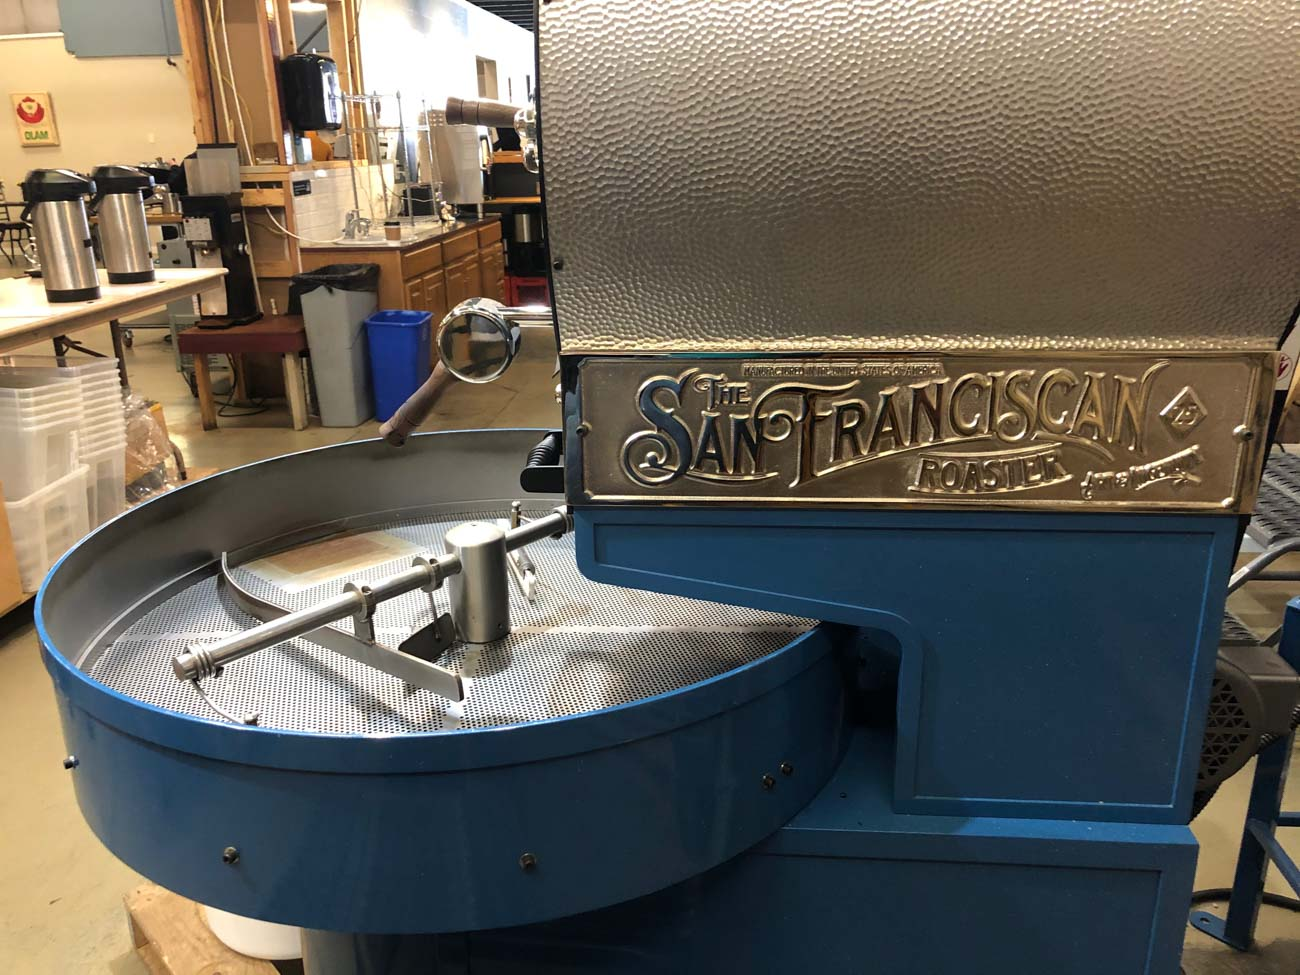 They use a carbon steel drum roaster from The San Franciscan Roaster Co. that can roast four batches in an hour. The roaster allows more precision and control, which means a better-tasting brew for you. / Image: Liz Engel // Published: 7.27.20